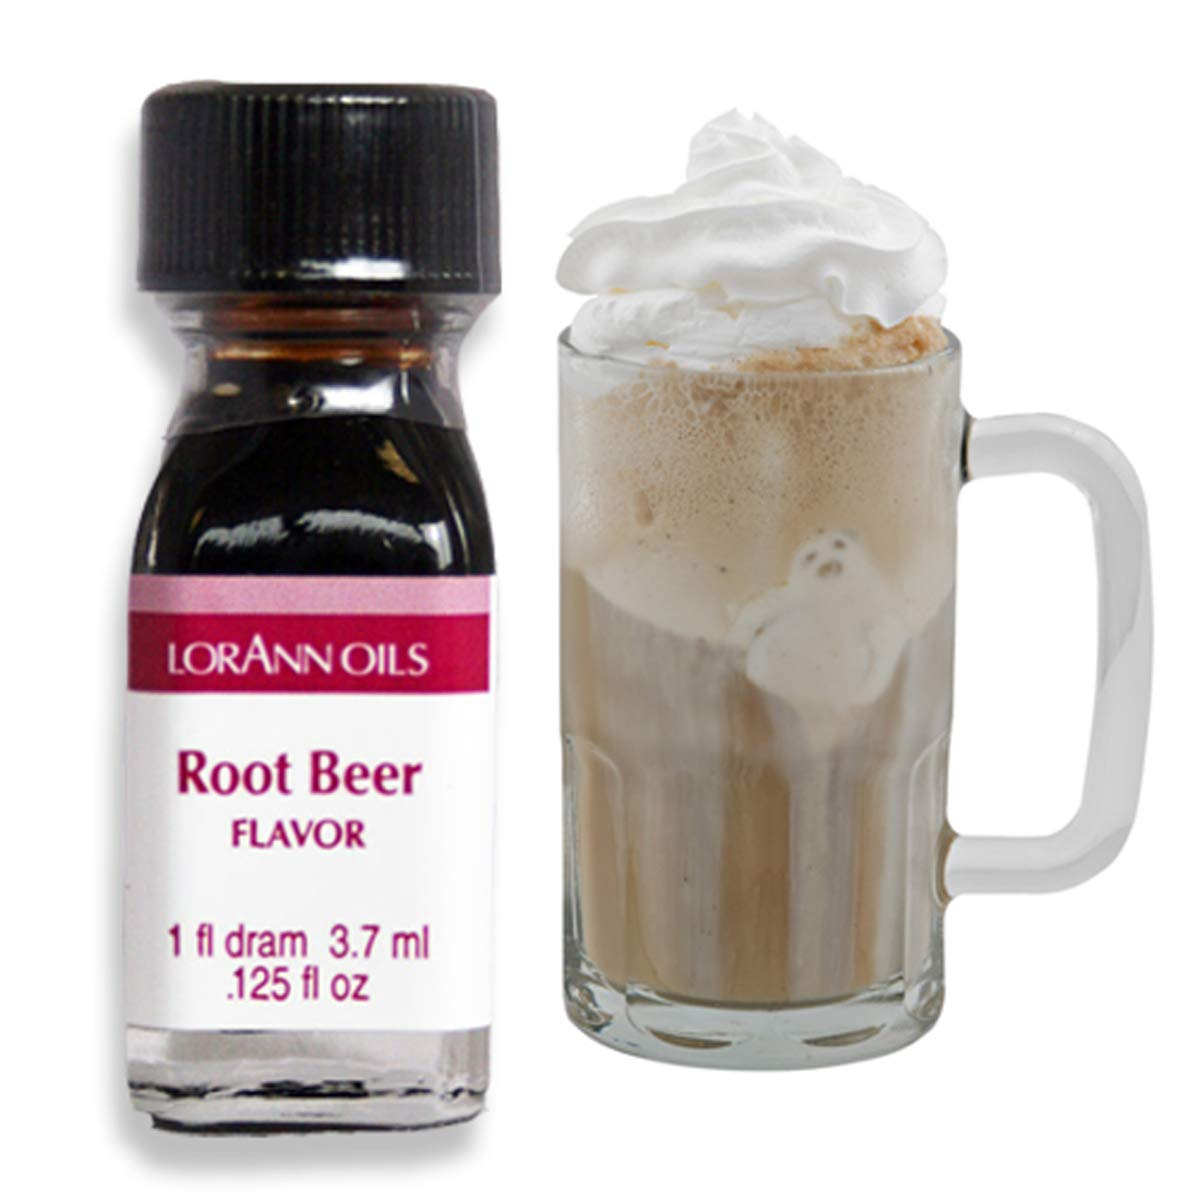 LorAnn Super Strength Root Beer Flavor, 1 dram bottle (.0125 fl oz - 3.7ml)